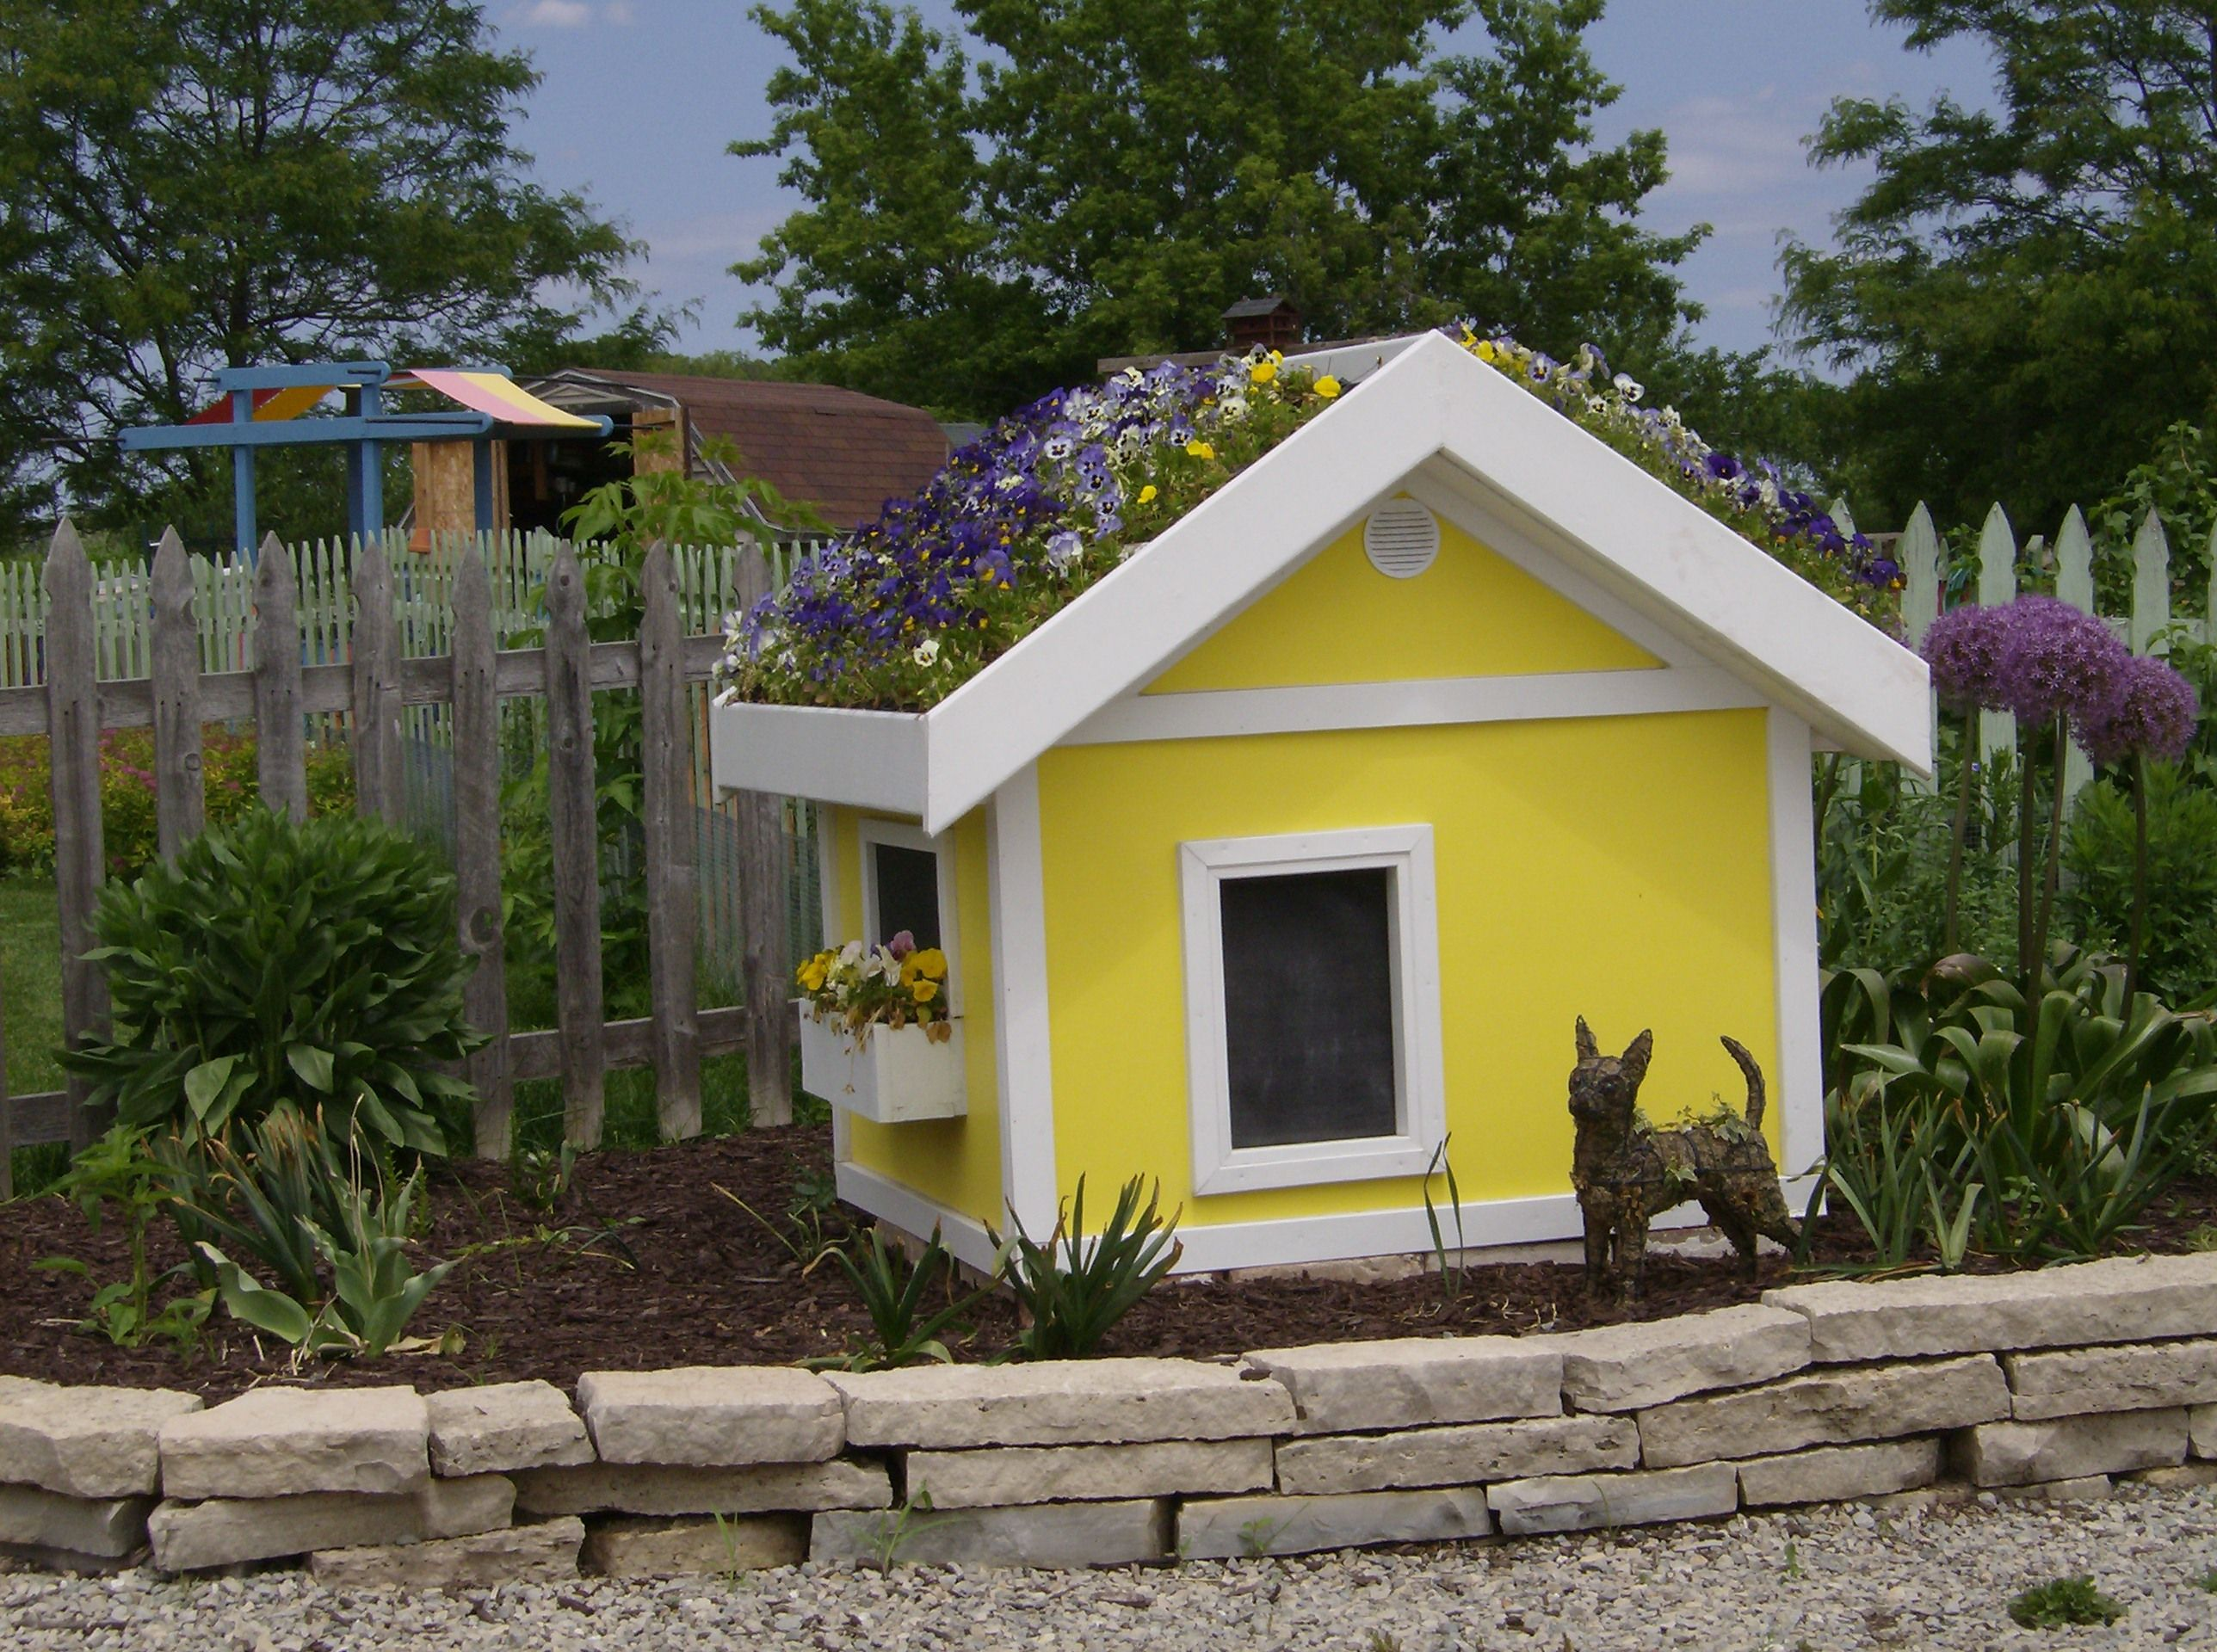 Playhouse at Garden's of the Fox Cities in Appleton, WI